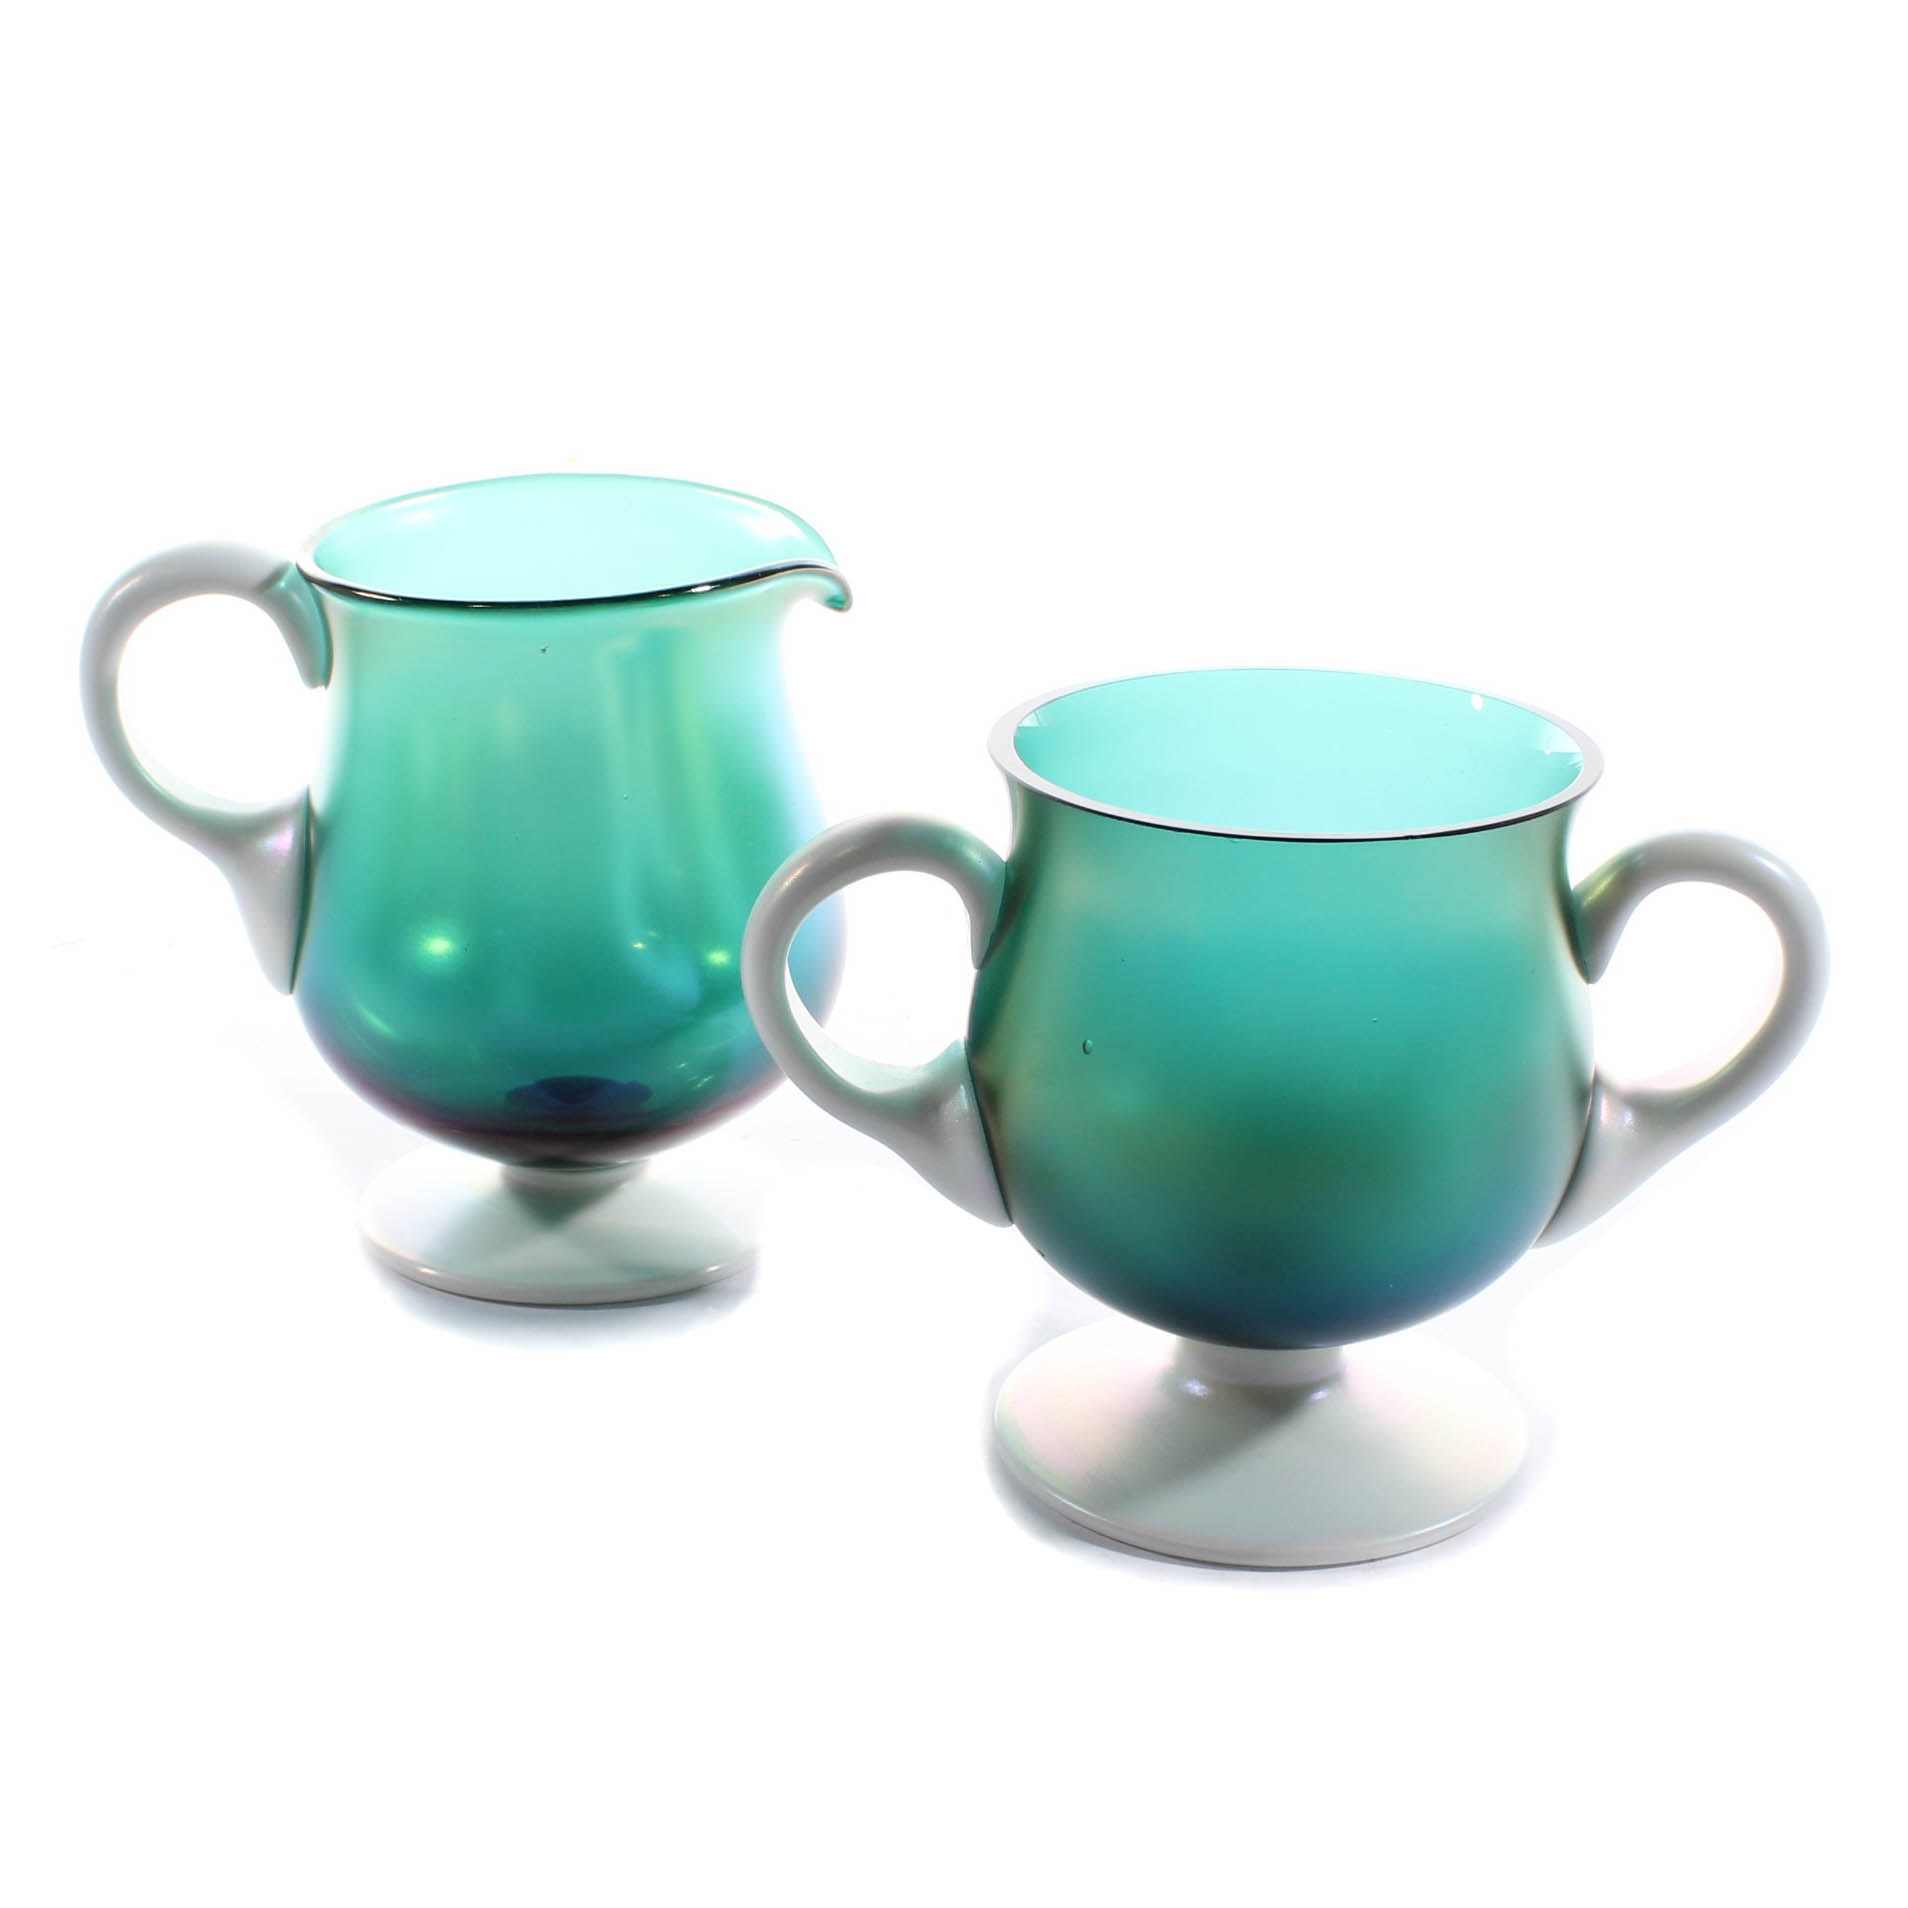 Steuben-Style Iridescent Art Glass Footed Sugar and Creamer